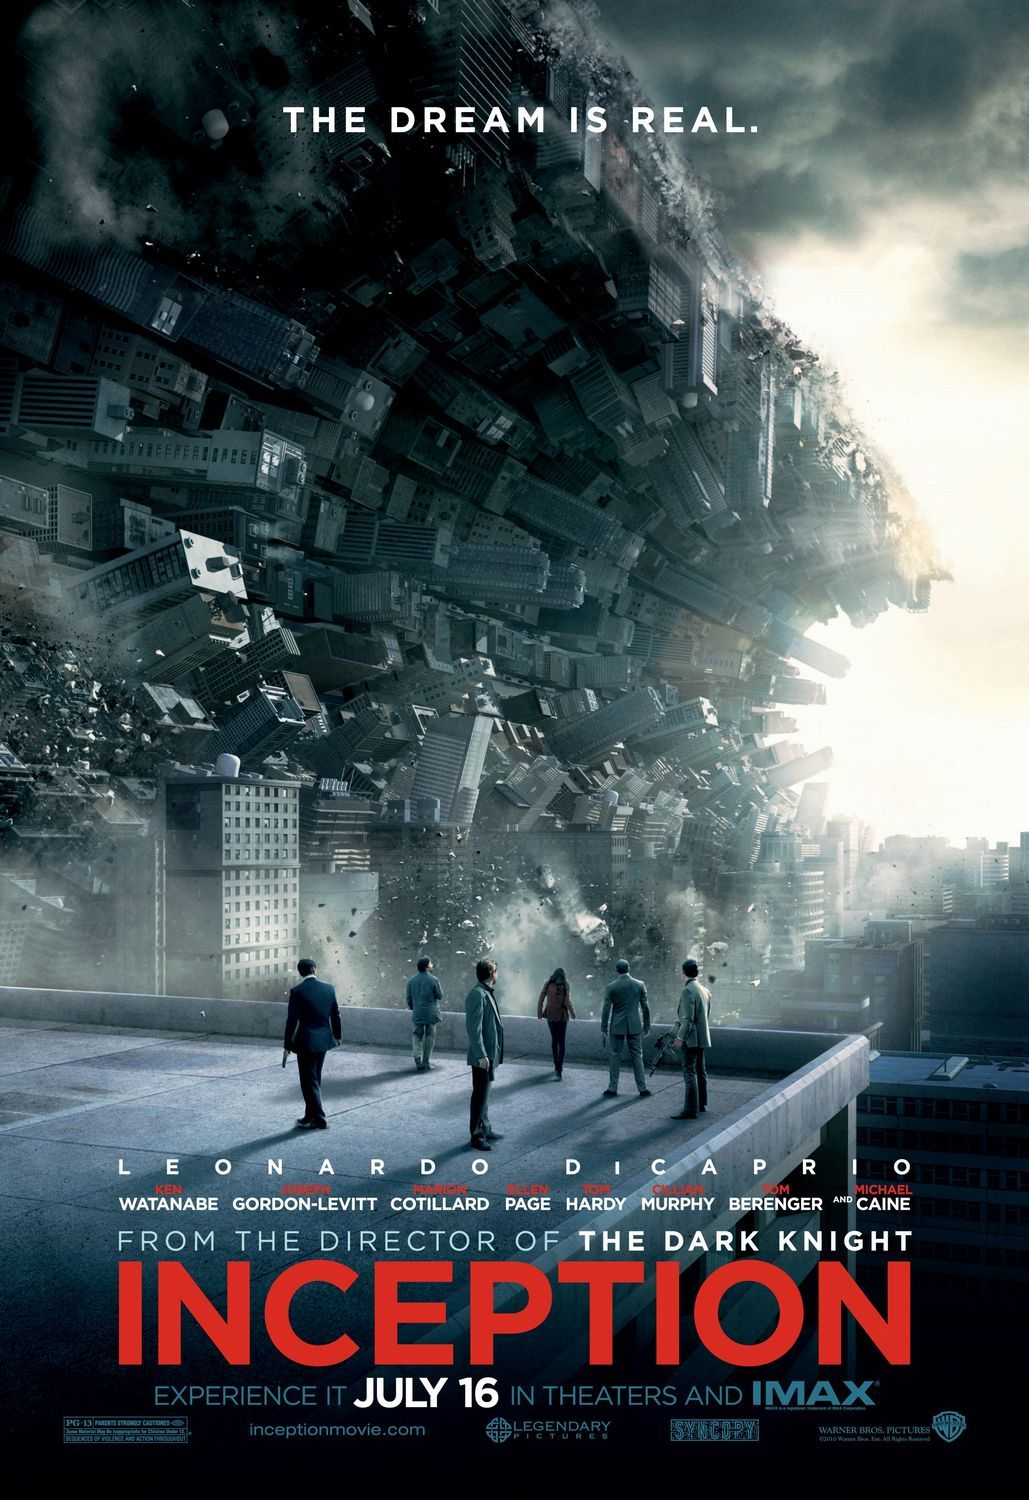 Pin By Krish Nand On Poster Designs Inception Movie Inception Movie Poster Best Movie Posters